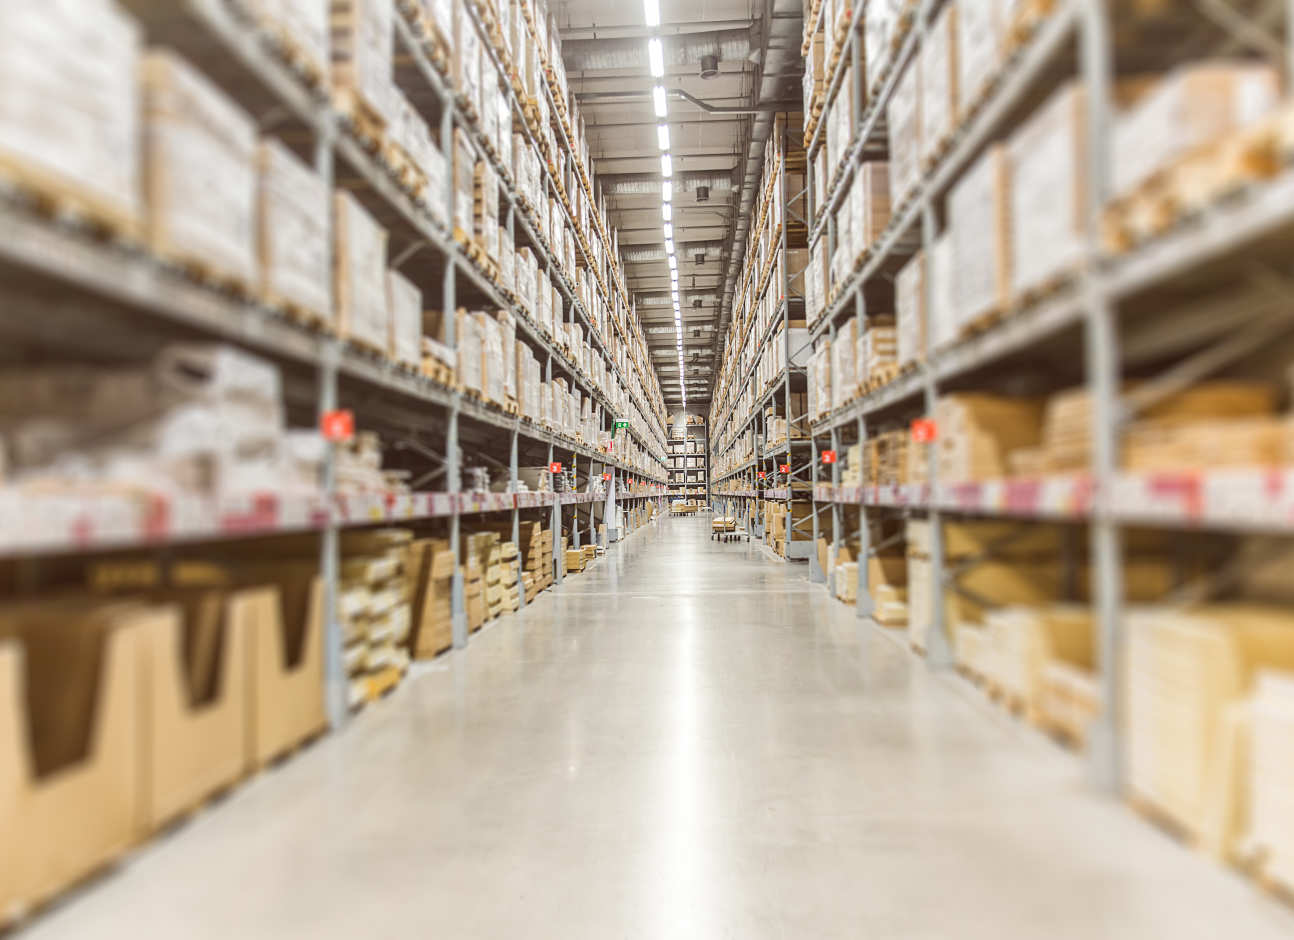 A view inside a warehouse